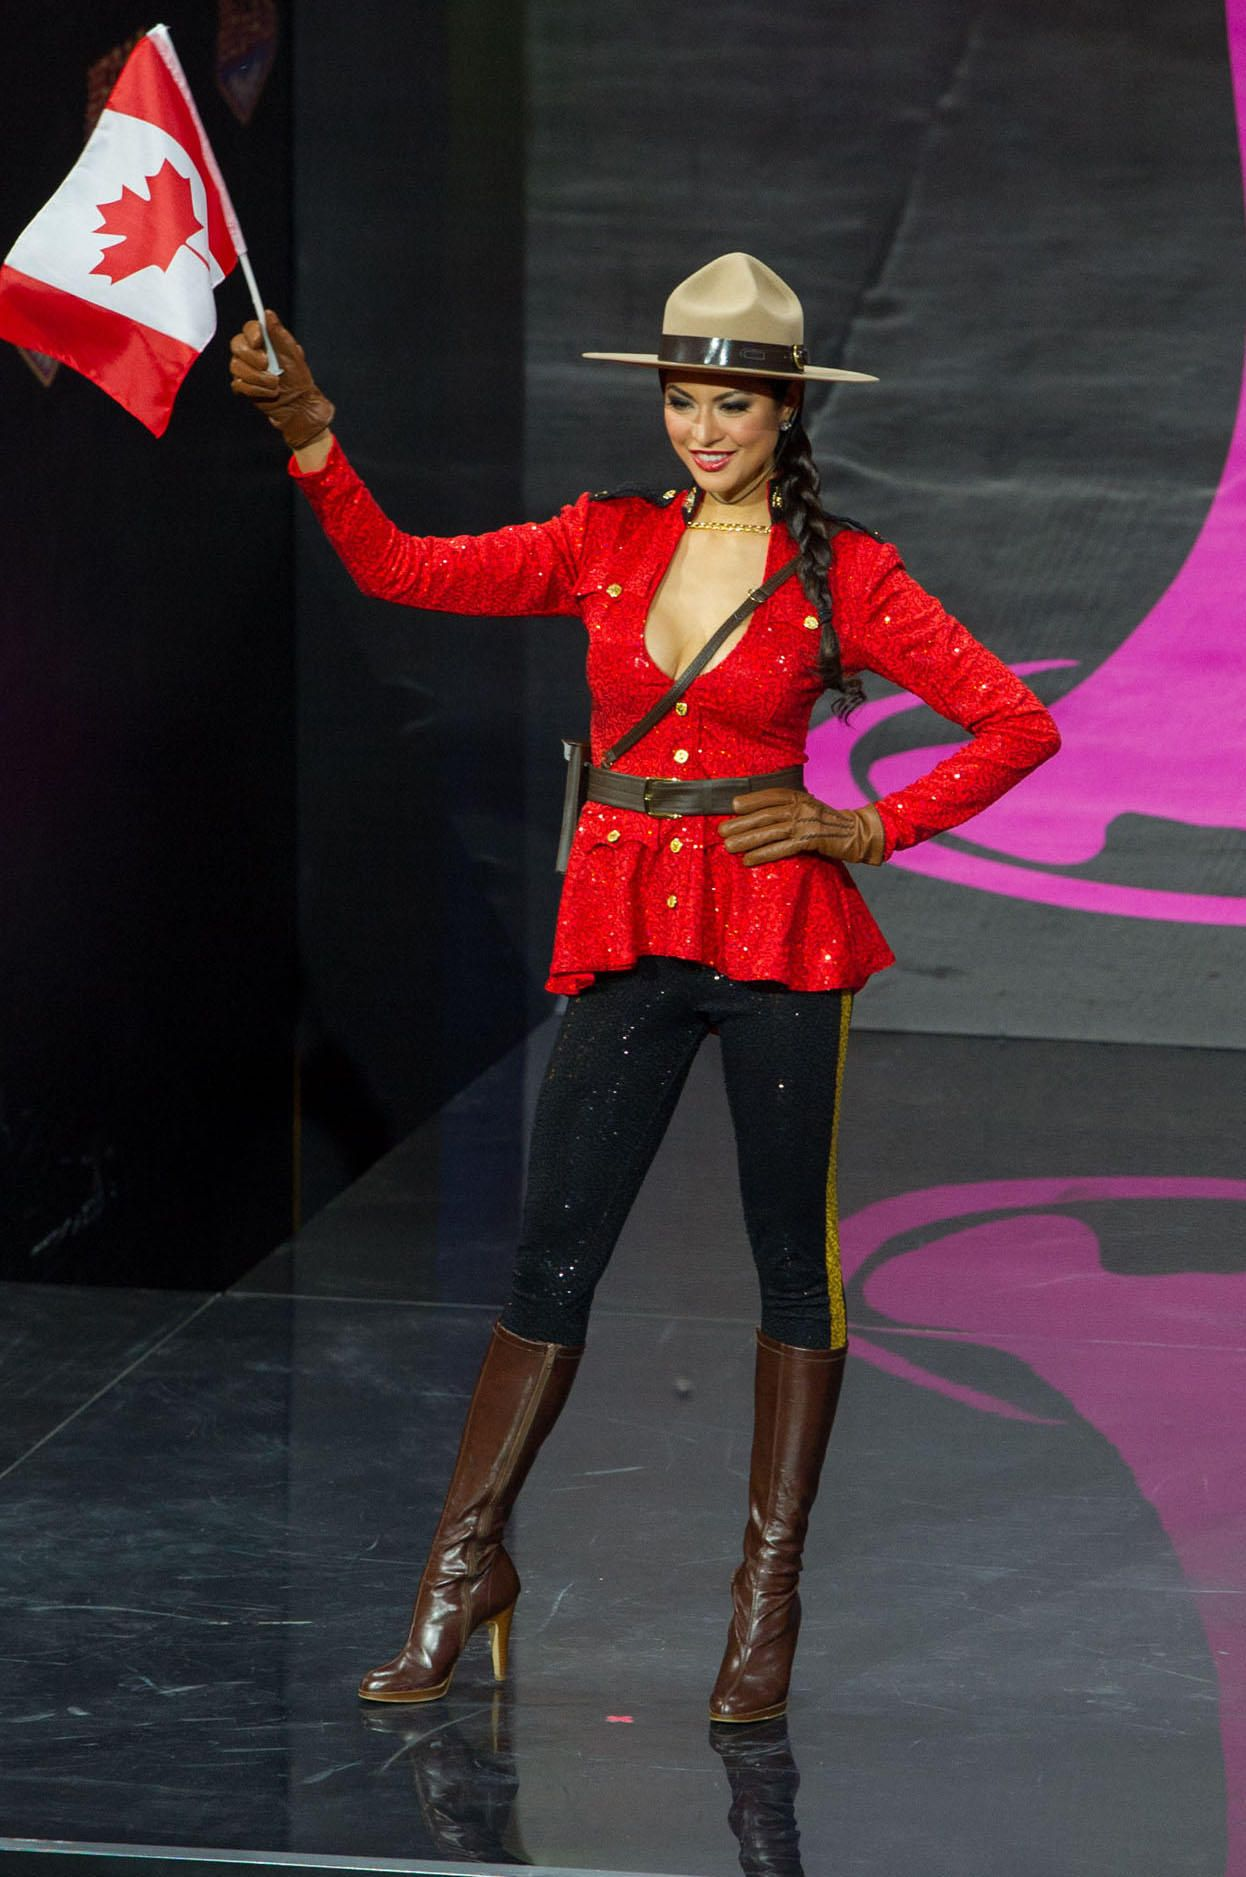 2013 MISS UNIVERSE NATIONAL COSTUME SHOW MISS CANADA--RIZA SANTOS--WE ARE  PRETTY SURE THE CANADIAN MOUNTED POLICE WOULD BE PROUD OF RIZA S SEXY TAKE  ON ... 019ca949f3